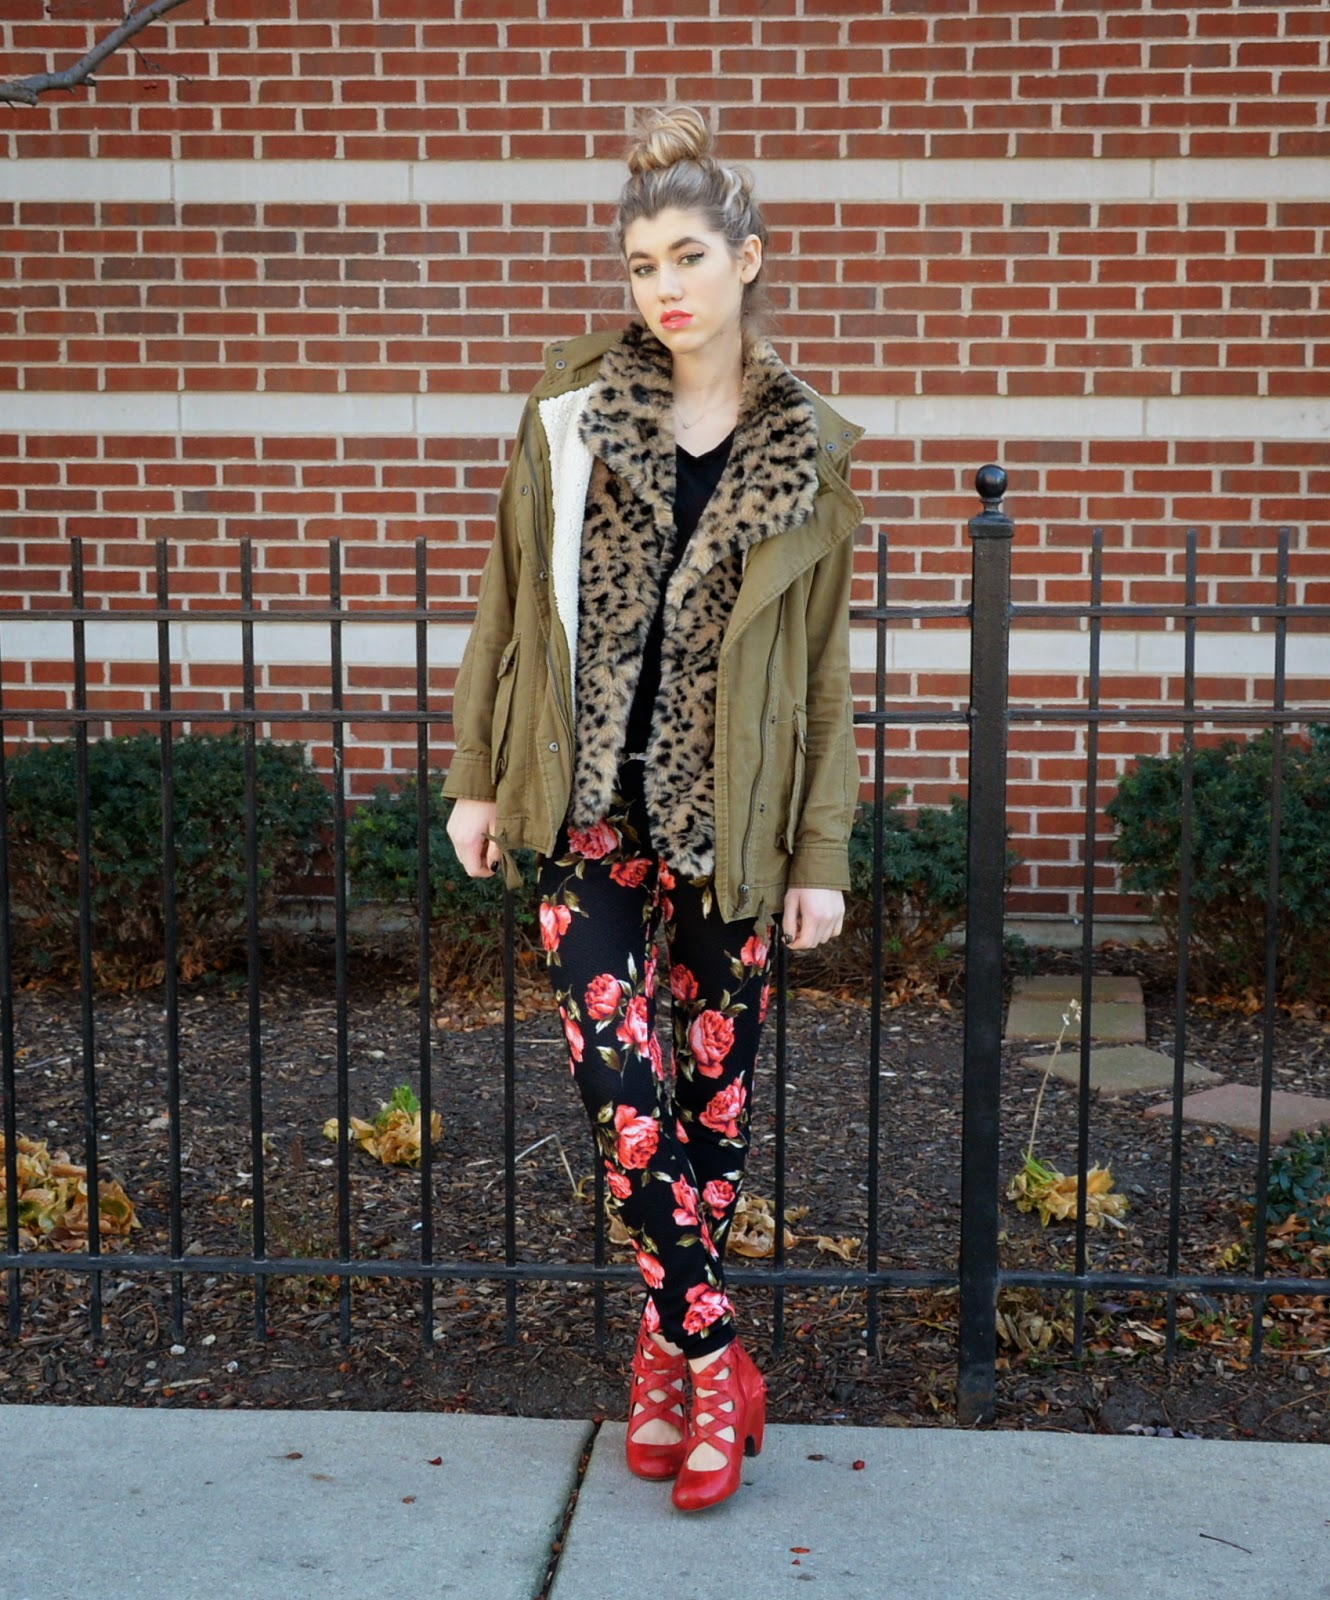 florals, fur, girl, fall fashion